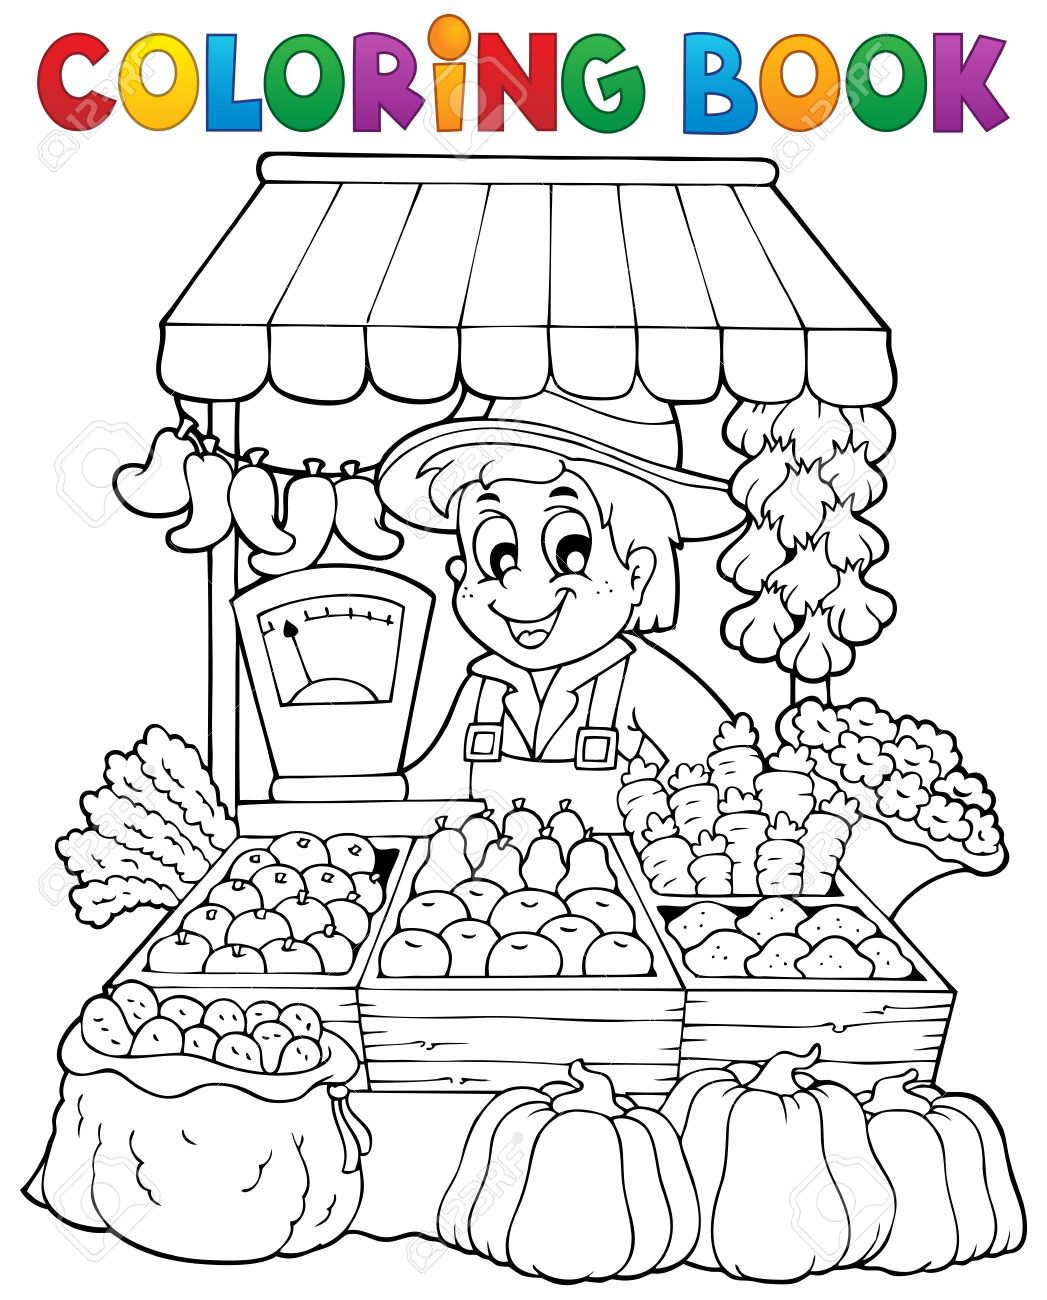 Coloring Book Farmer Theme 2 - Eps10 Vector Illustration Royalty ...